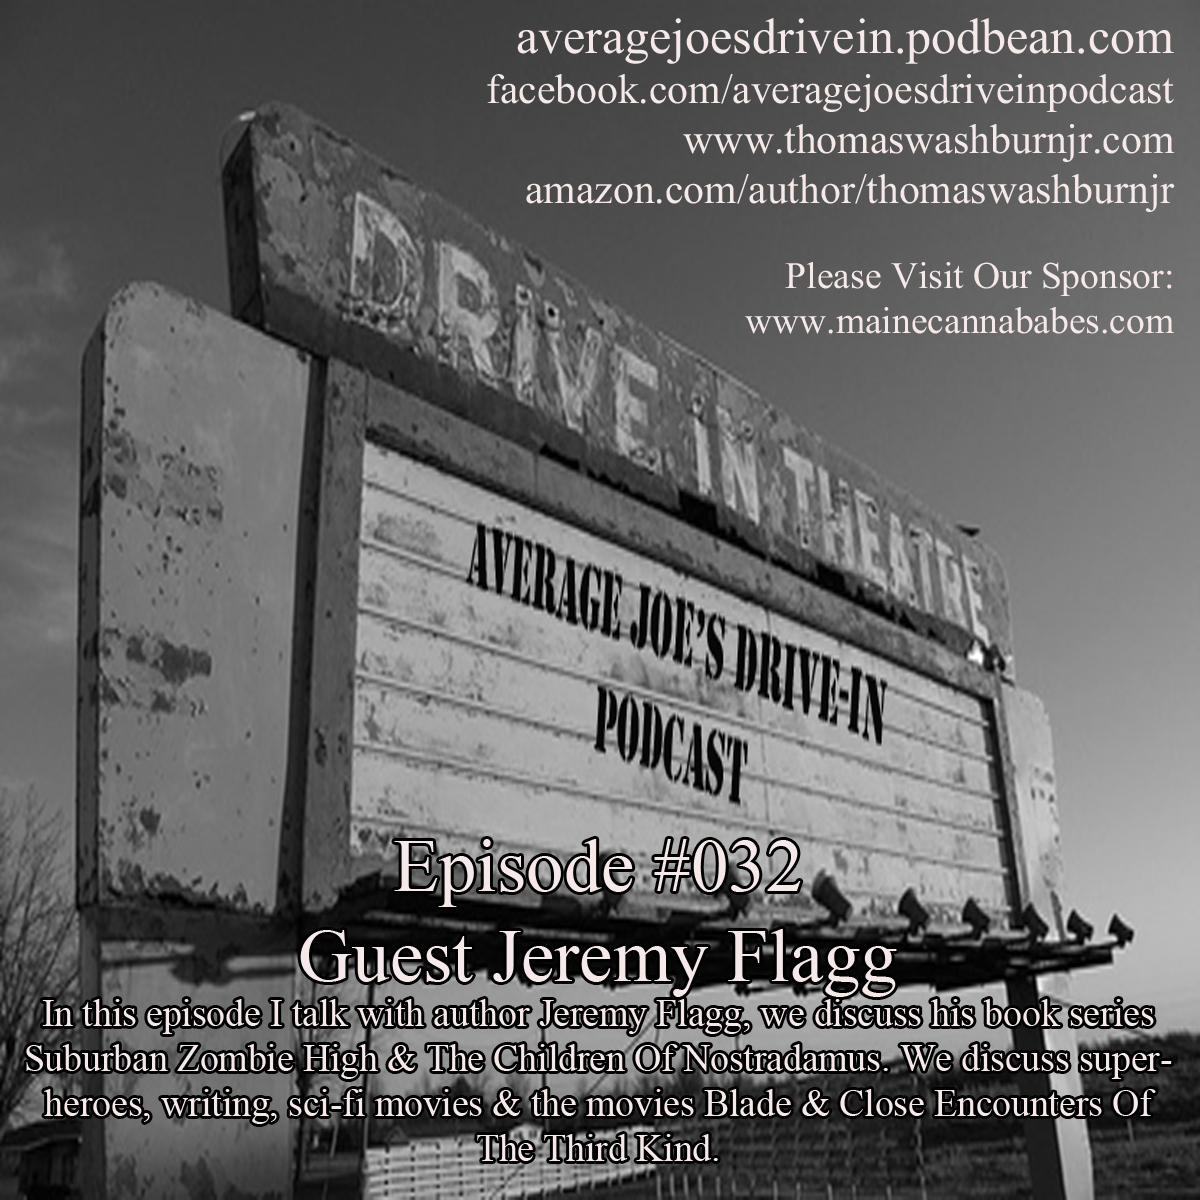 Average Joe's Drive-In: Guest Jeremy Flagg